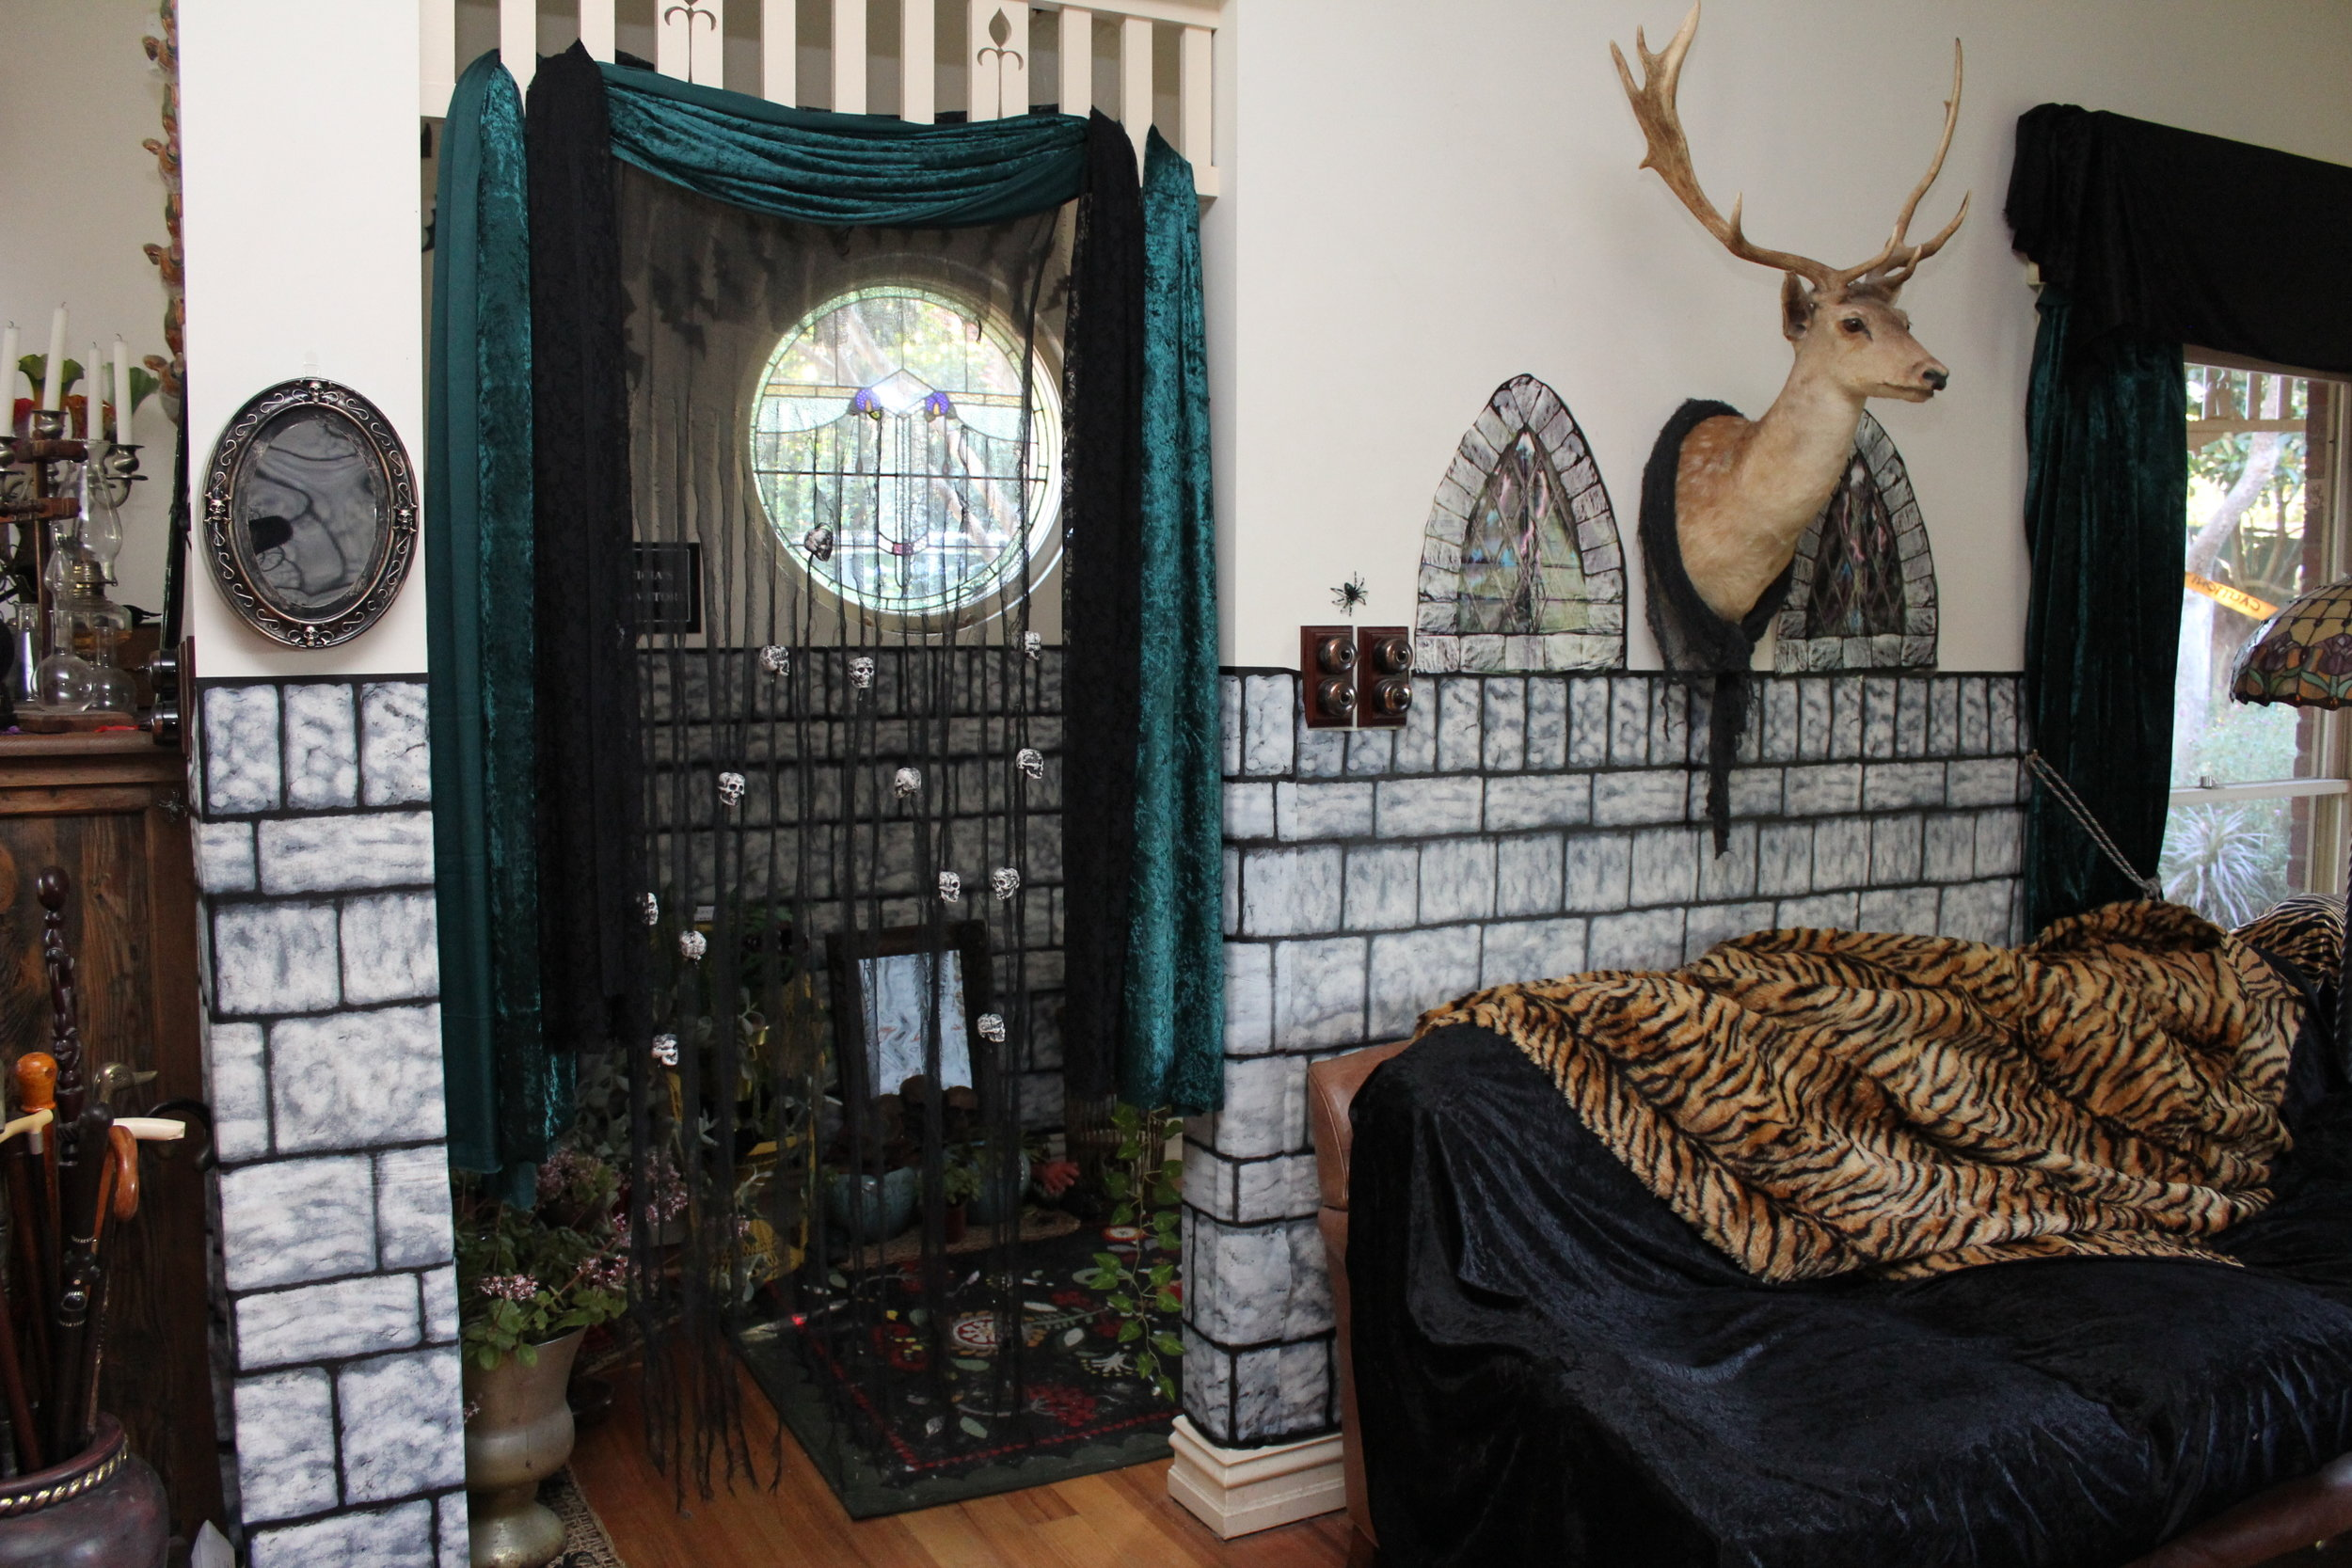 The Addams Family Decorating Ideas, Use Stone and Velvet to transform a room